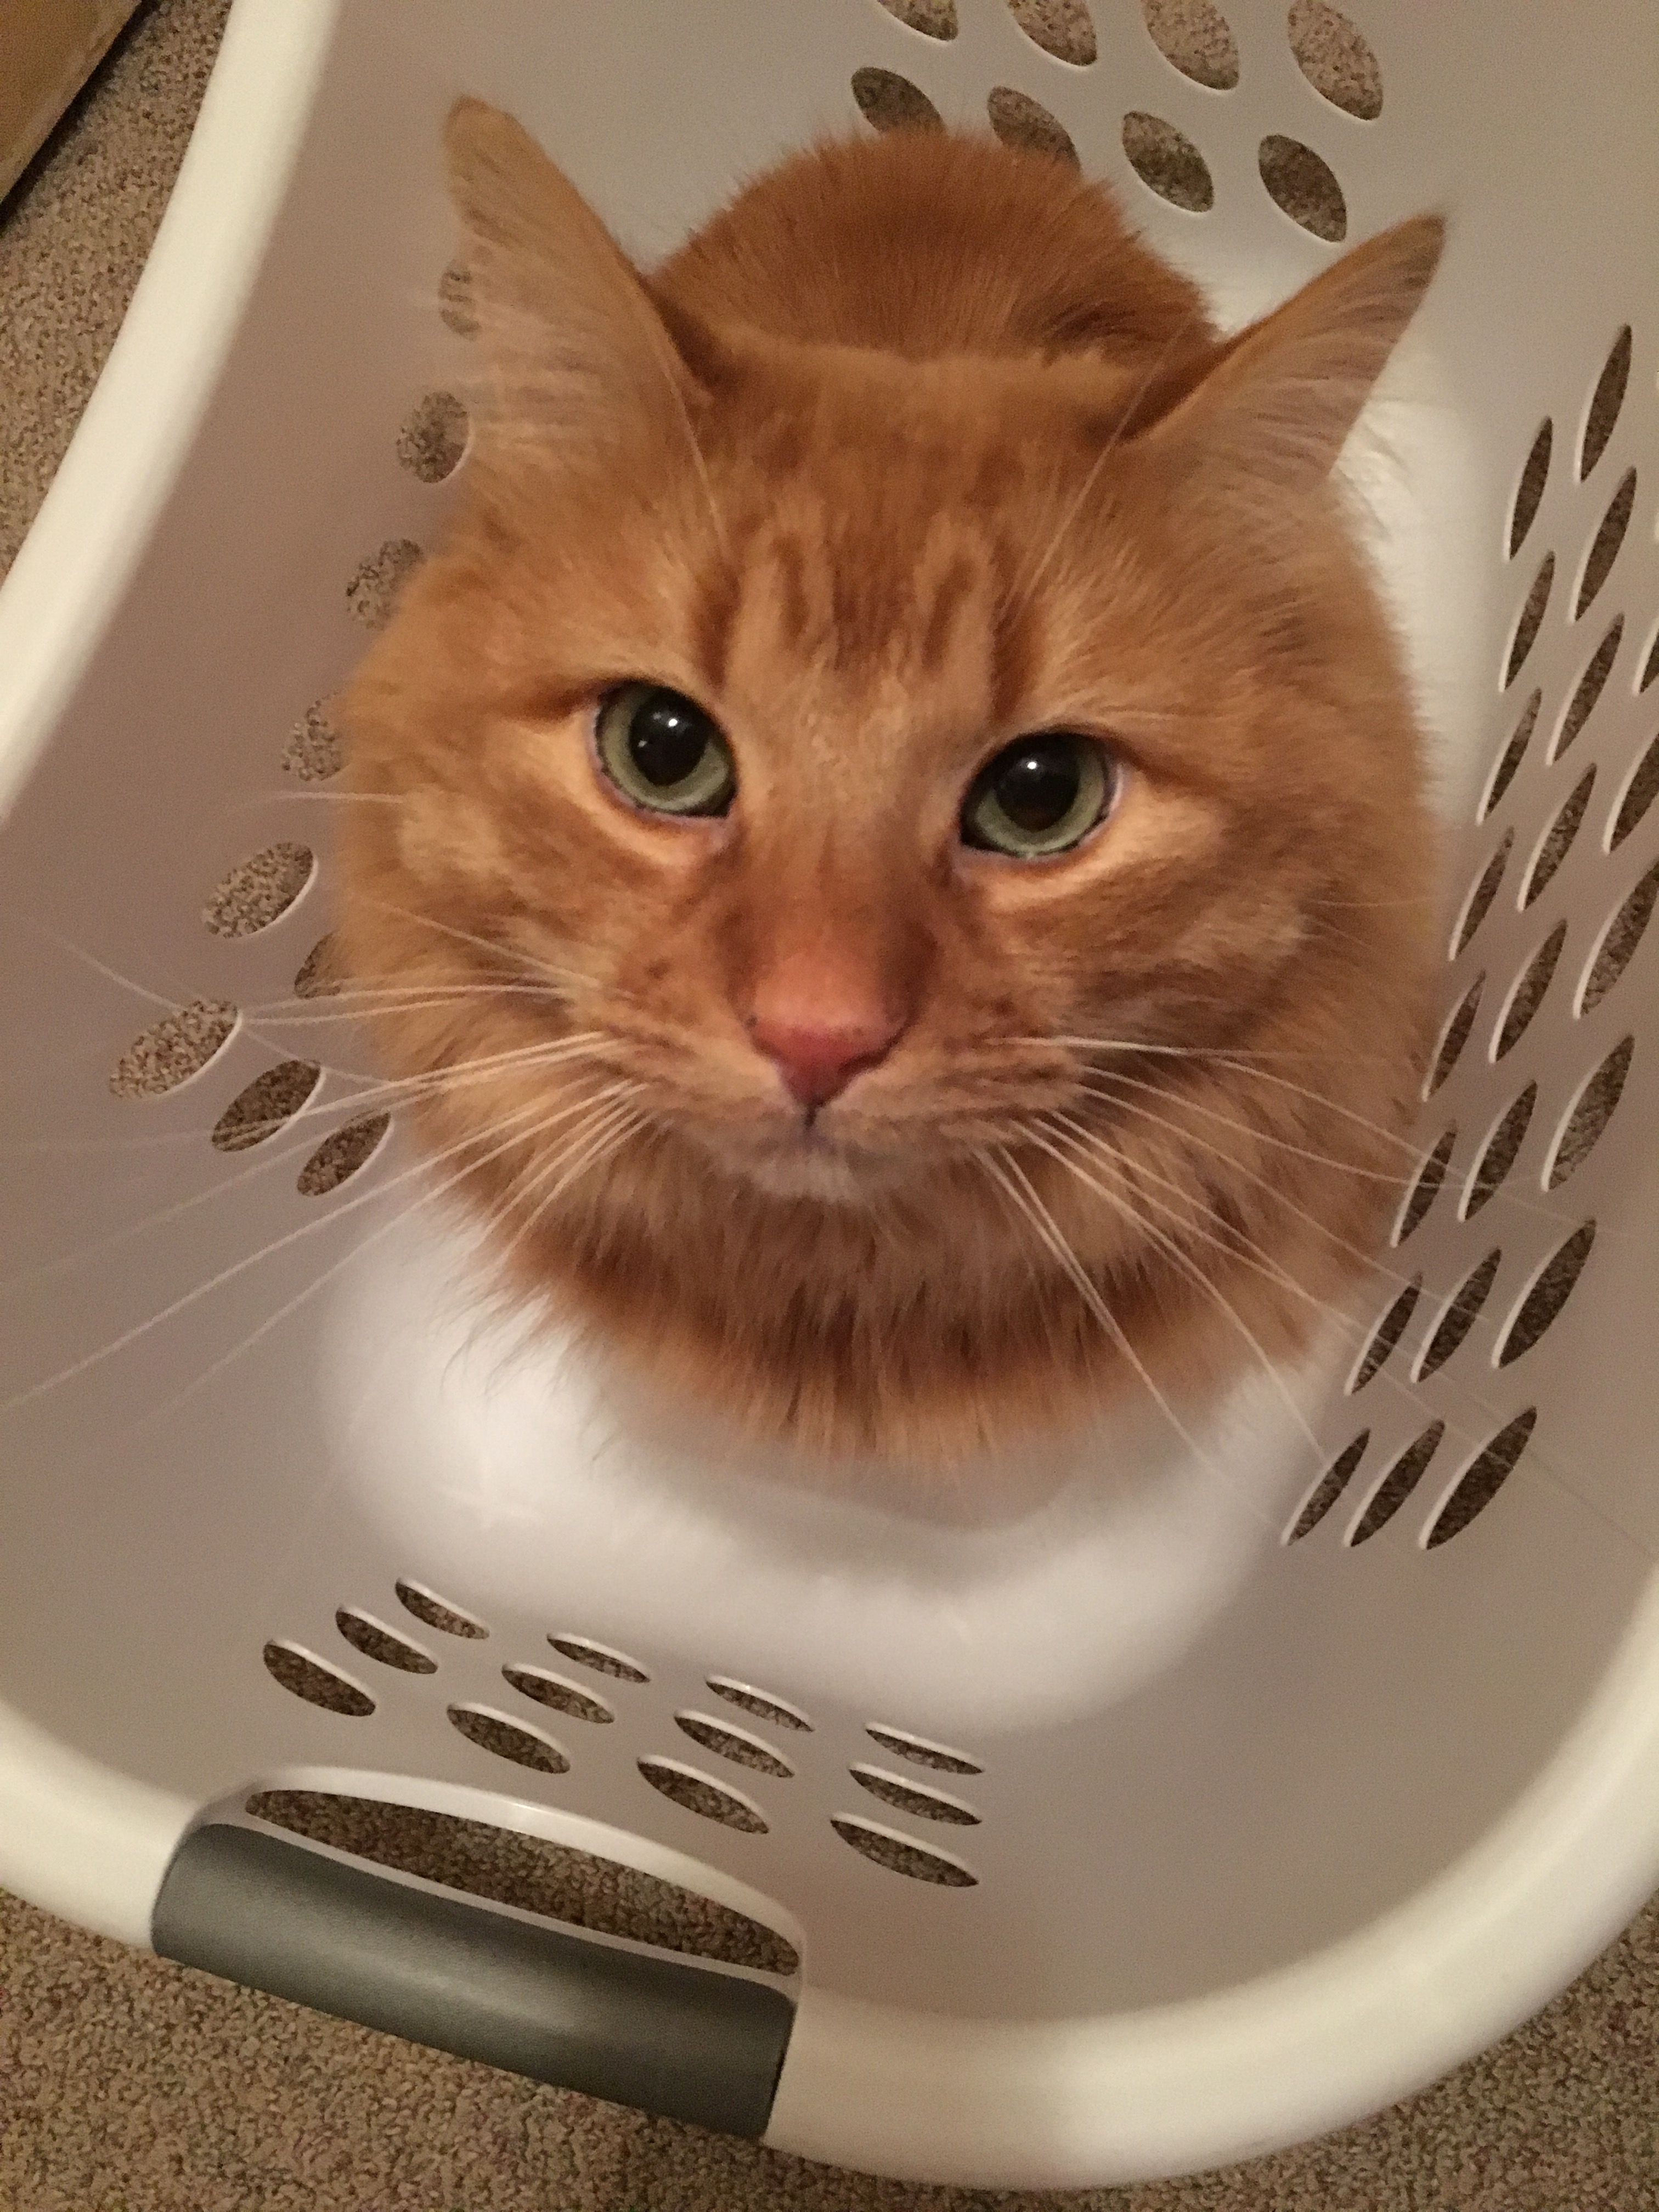 This orange kitty needs some laundry to lie down on